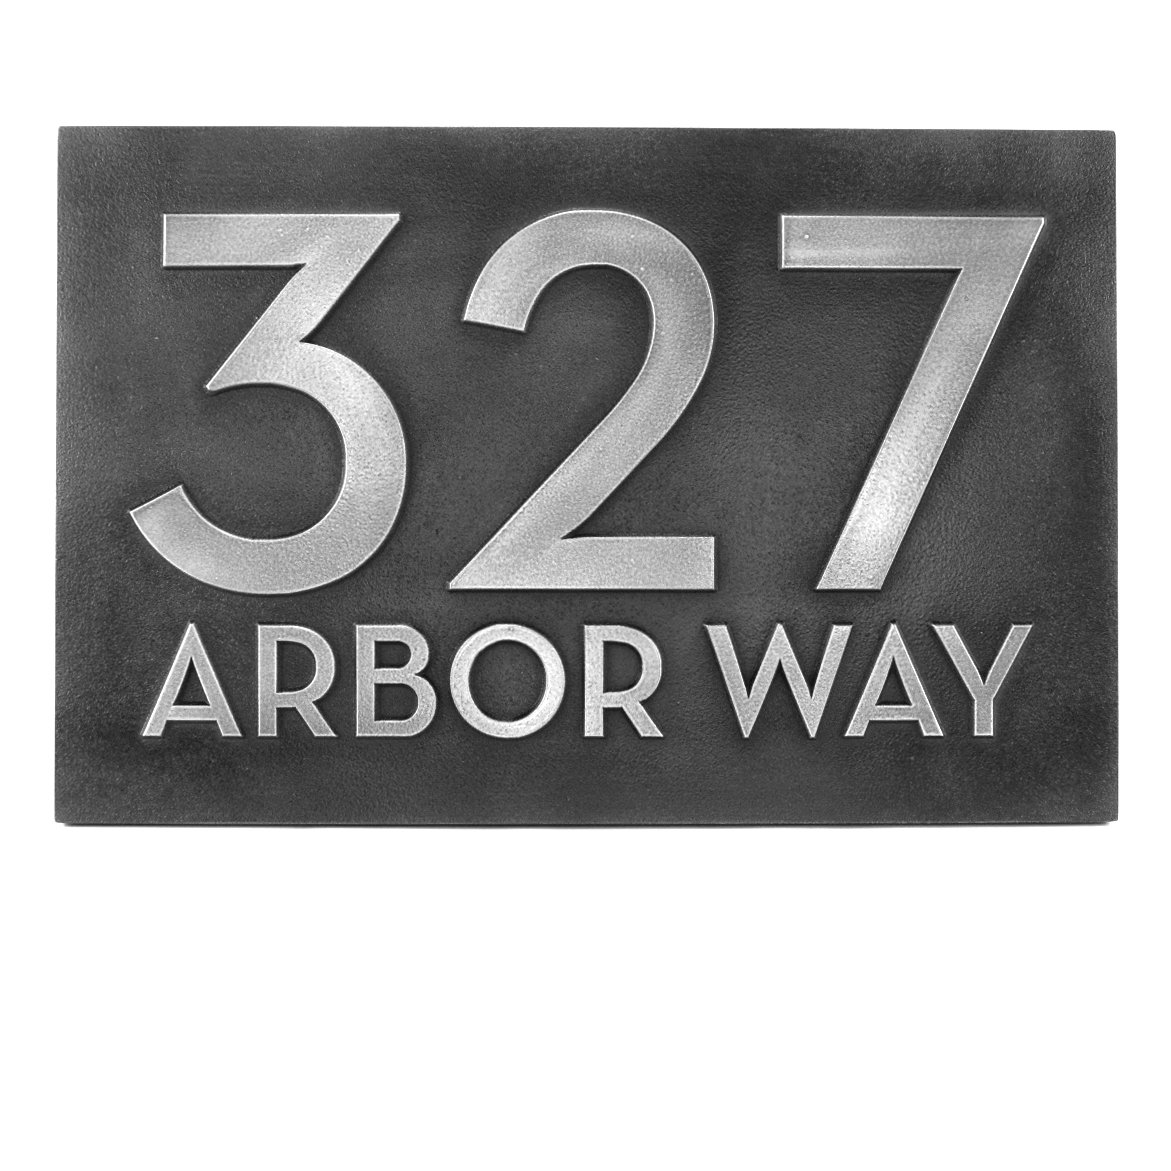 Big Bold Classy Modern Font Horizontal Number and Street (optional) Home Address Plaque 13x8.5 - Pewter Metal Coated Custom Number Sign